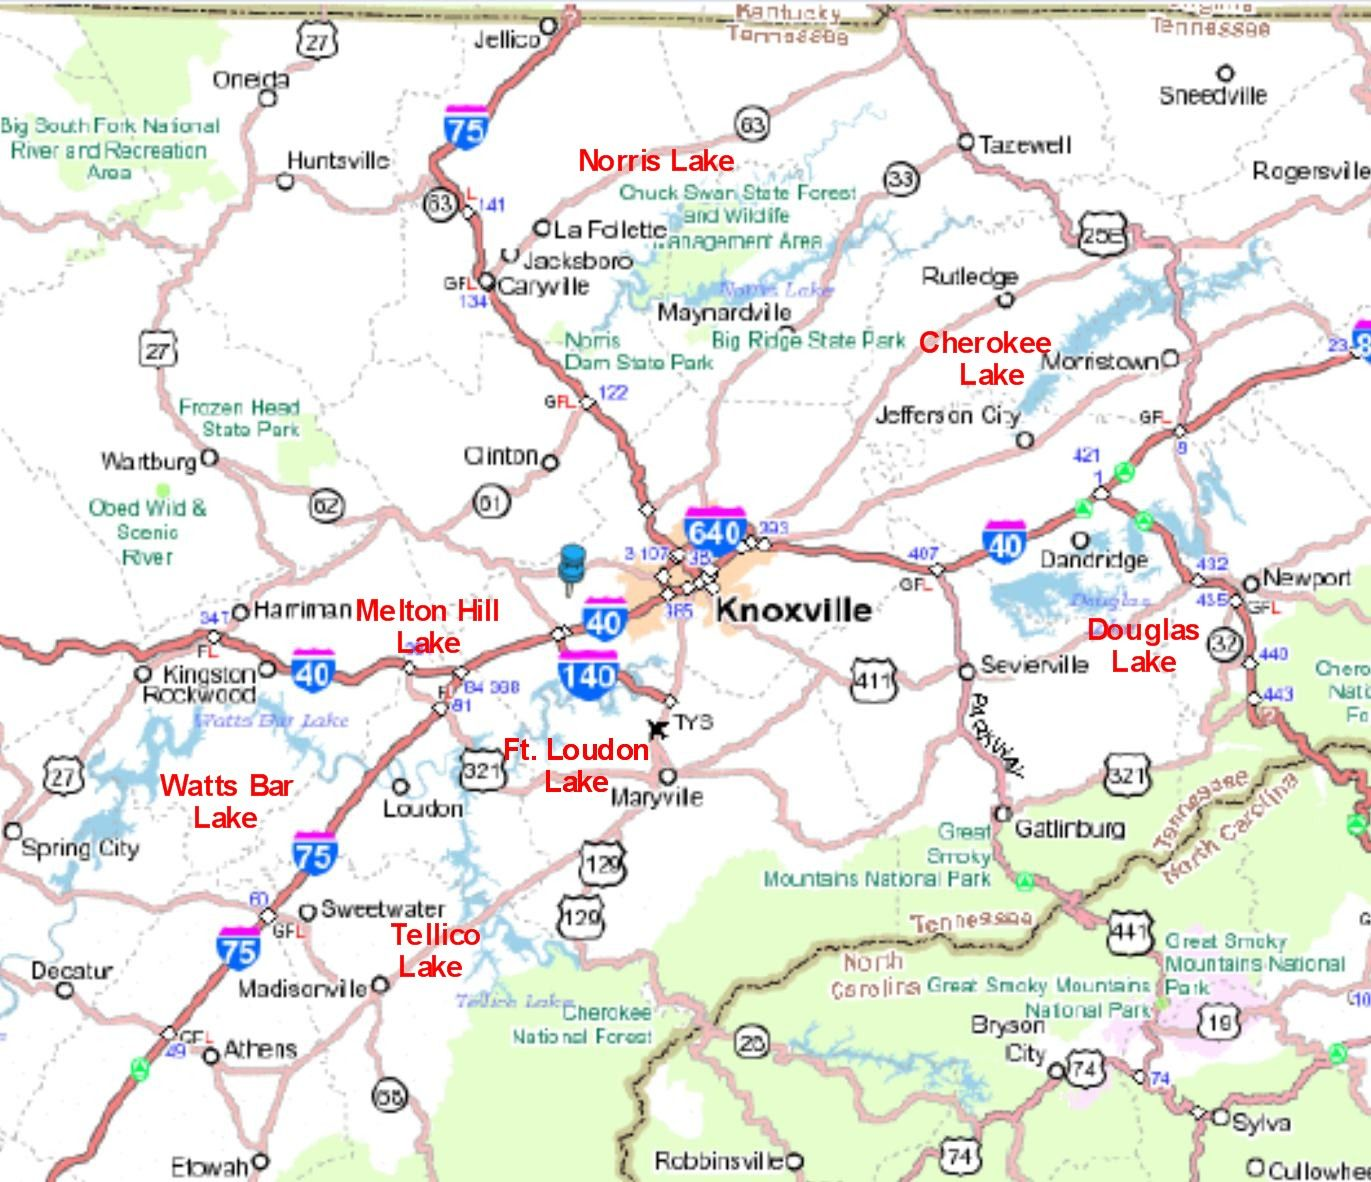 Knoxville Tennessee Map lakes in east tennessee map |  for Knoxville Tennessee and East